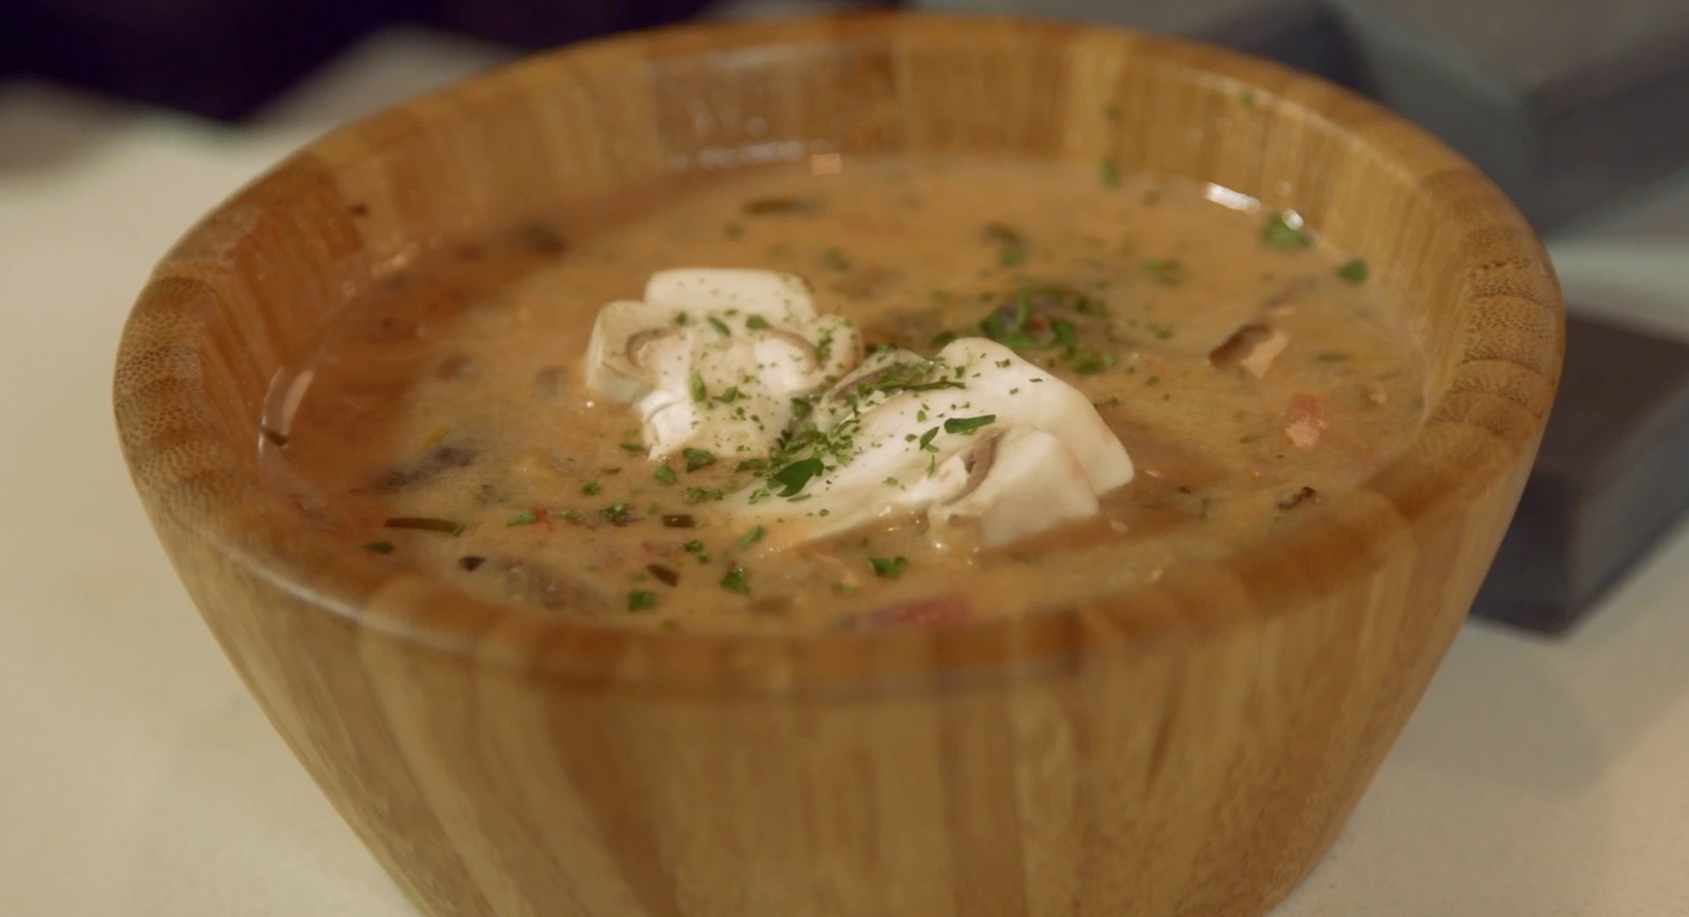 How to Make Mushroom Stew from the Game 'Minecraft'